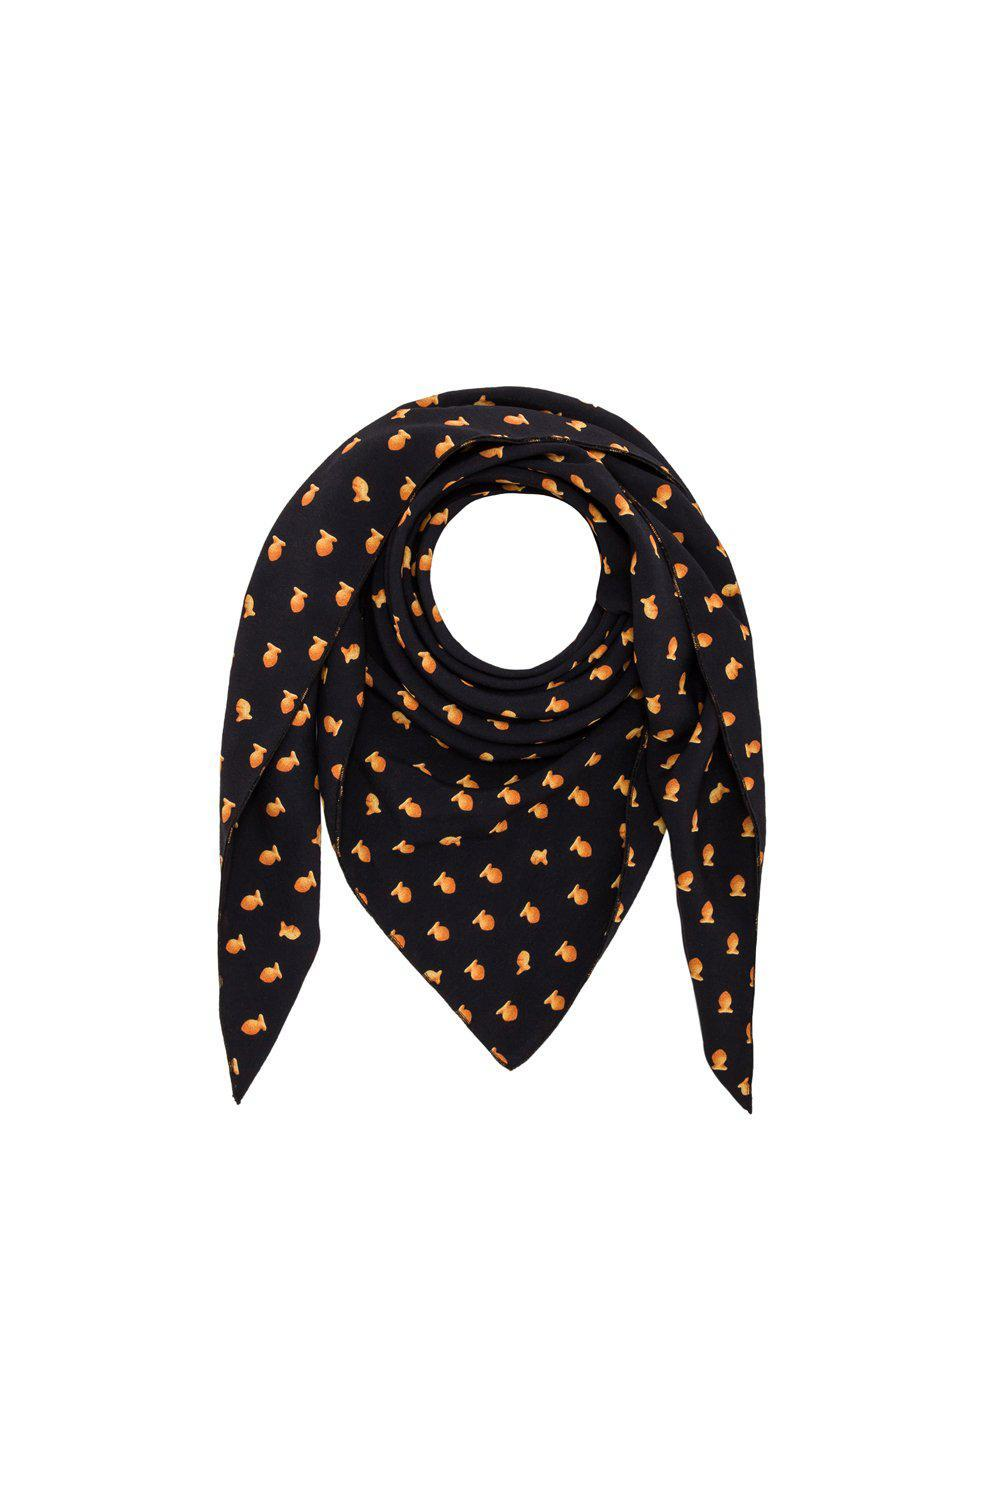 Scarf triangle in goldfish print